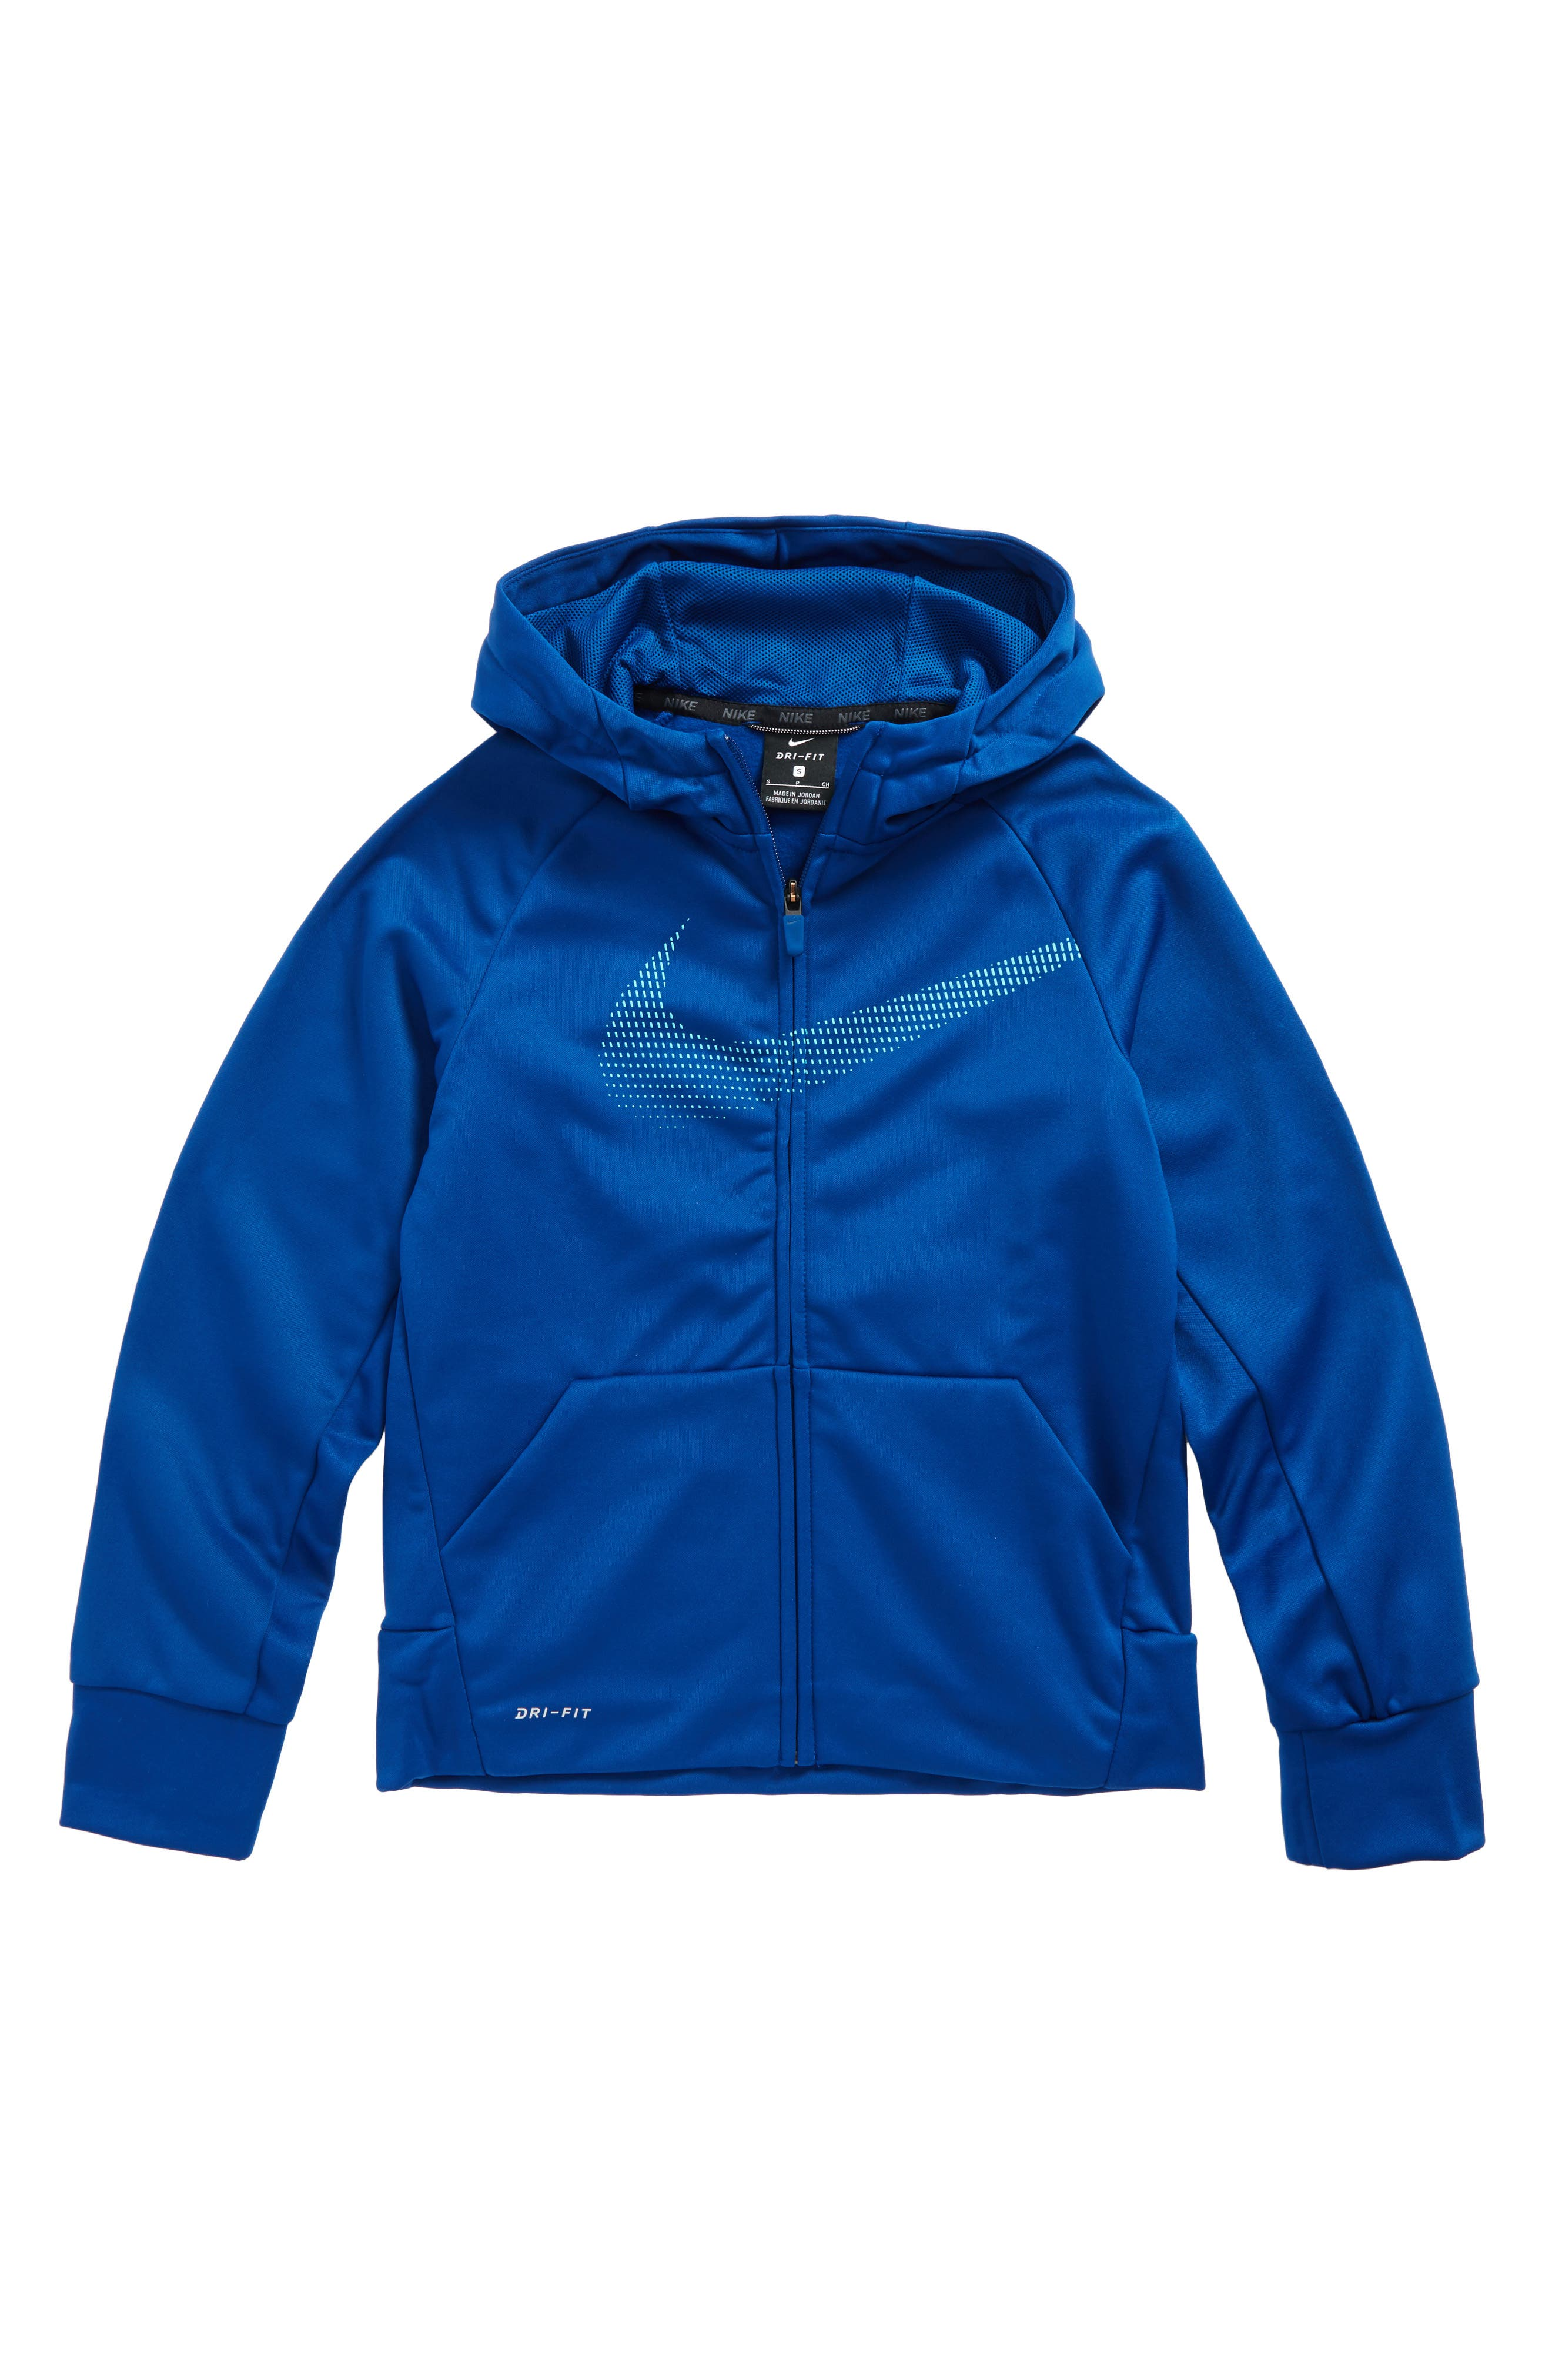 Therma Dry Hoodie,                             Main thumbnail 3, color,